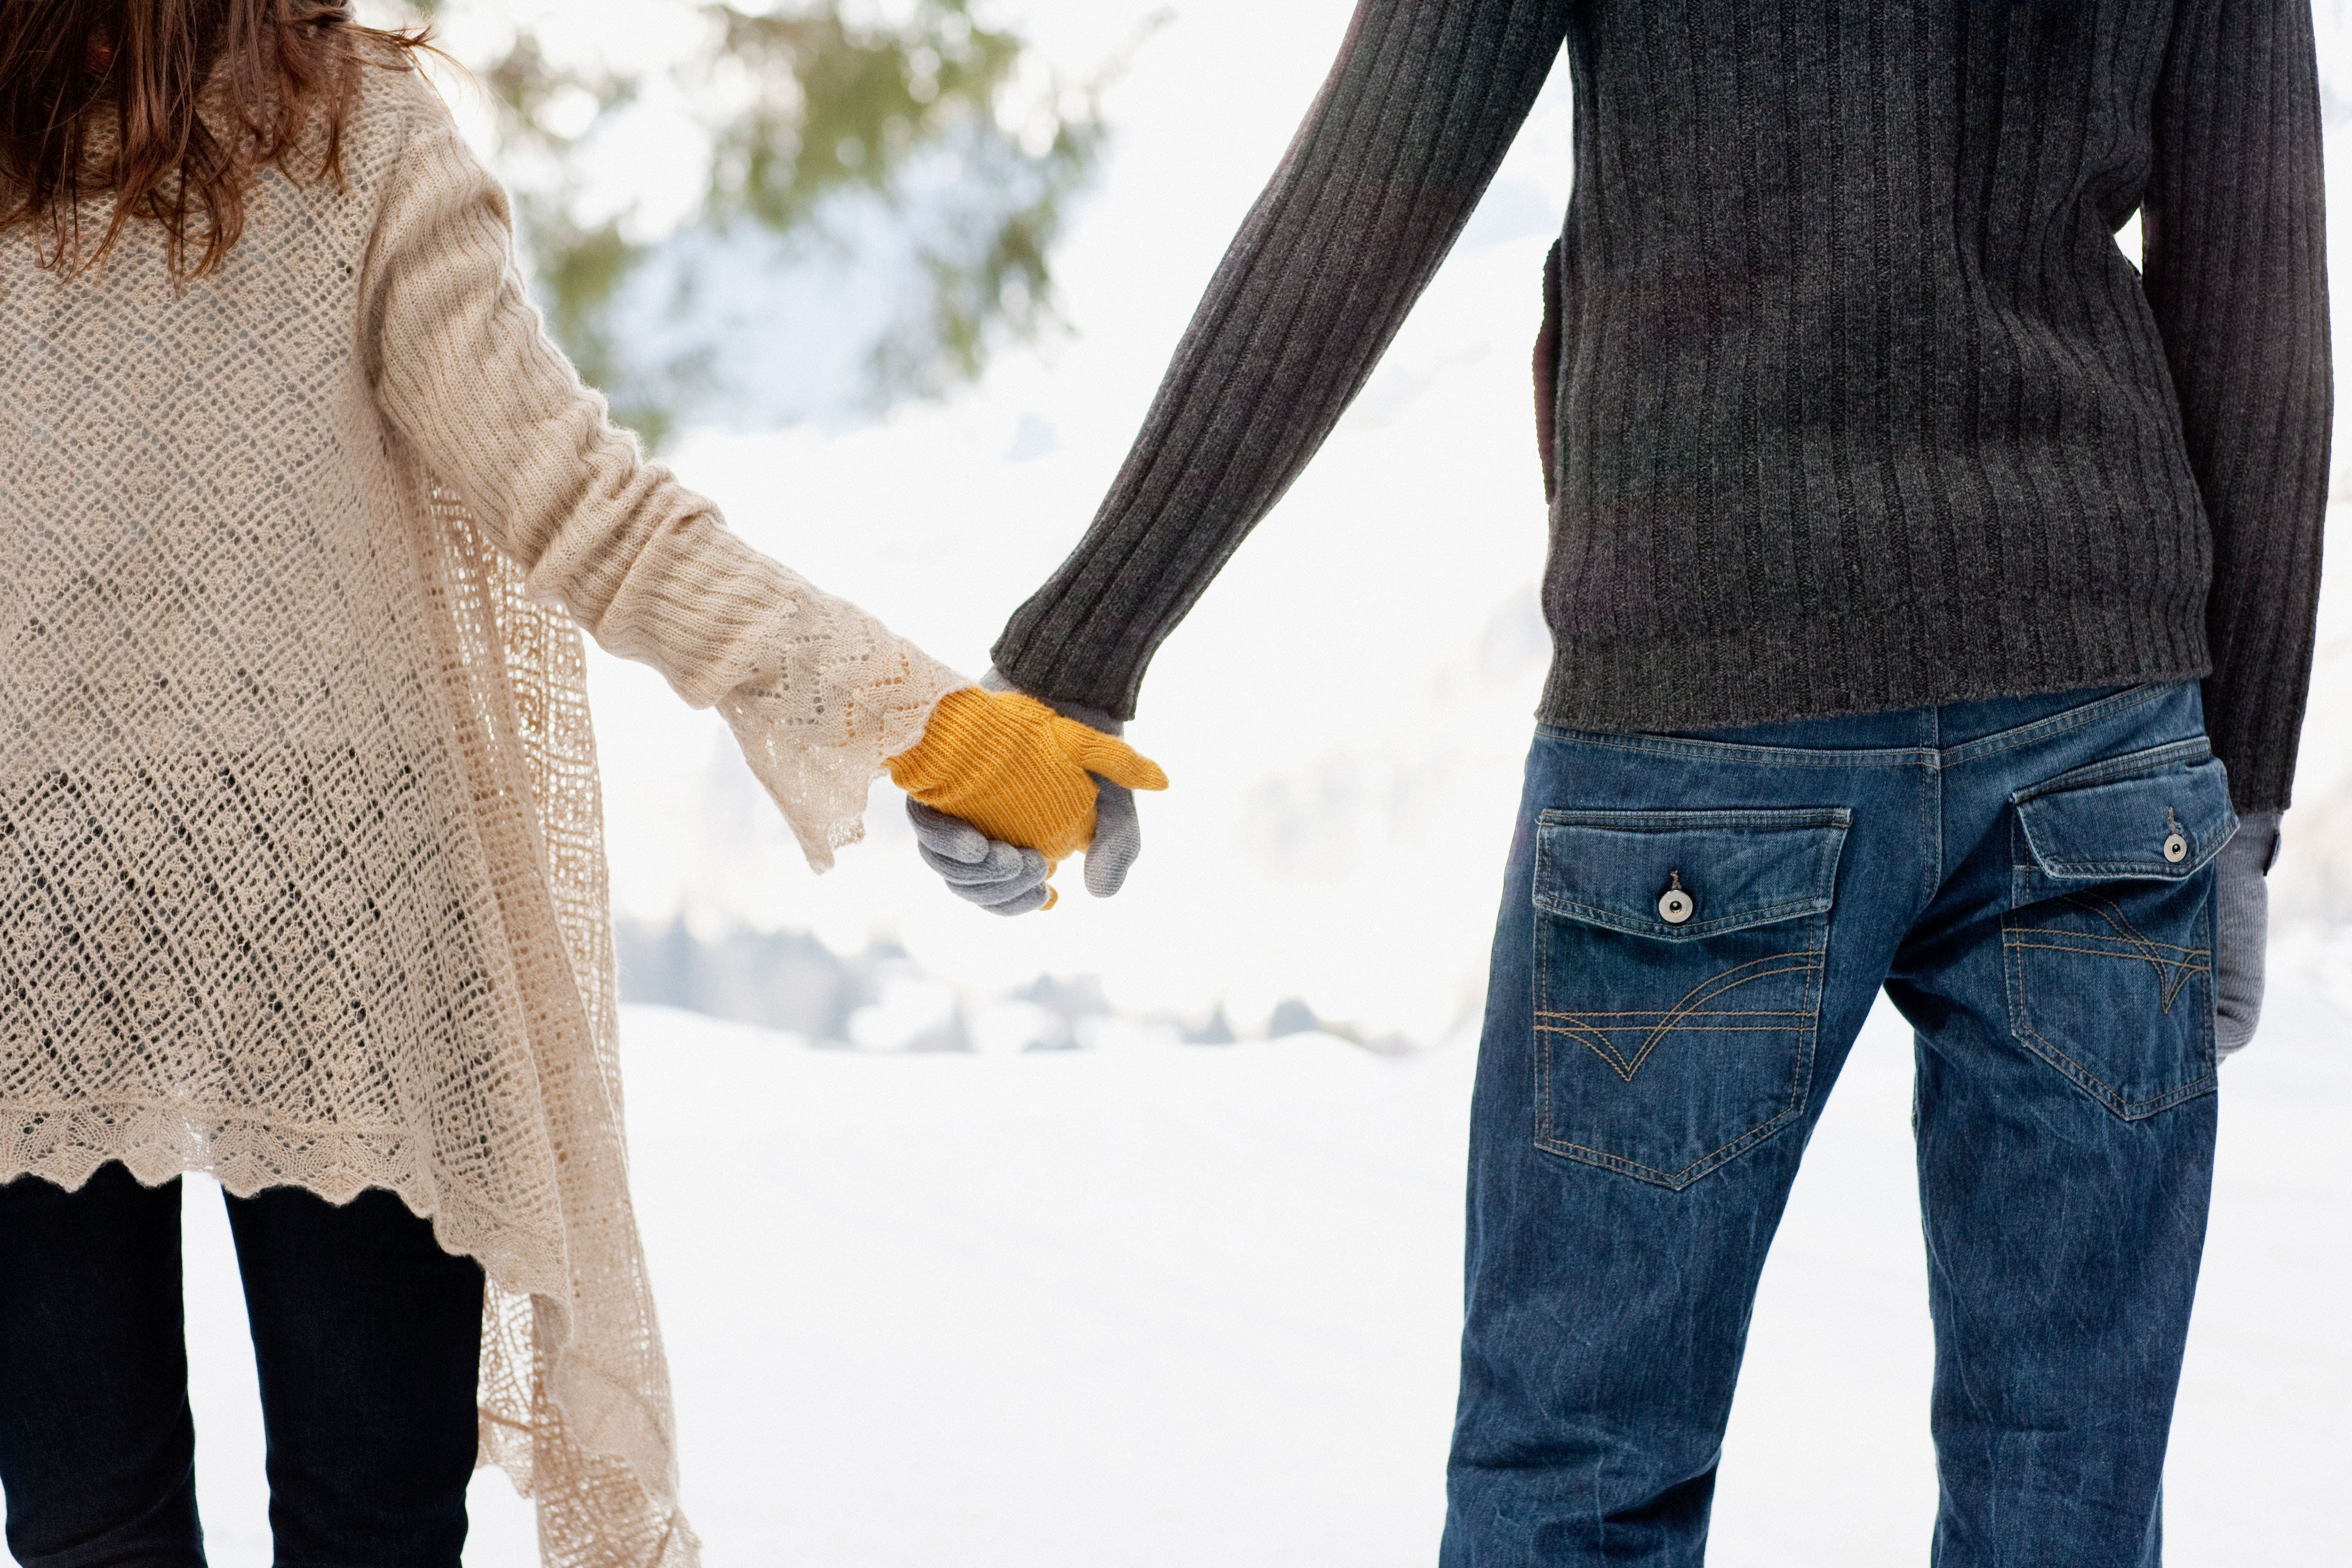 Fear of intimacy among hookup couples